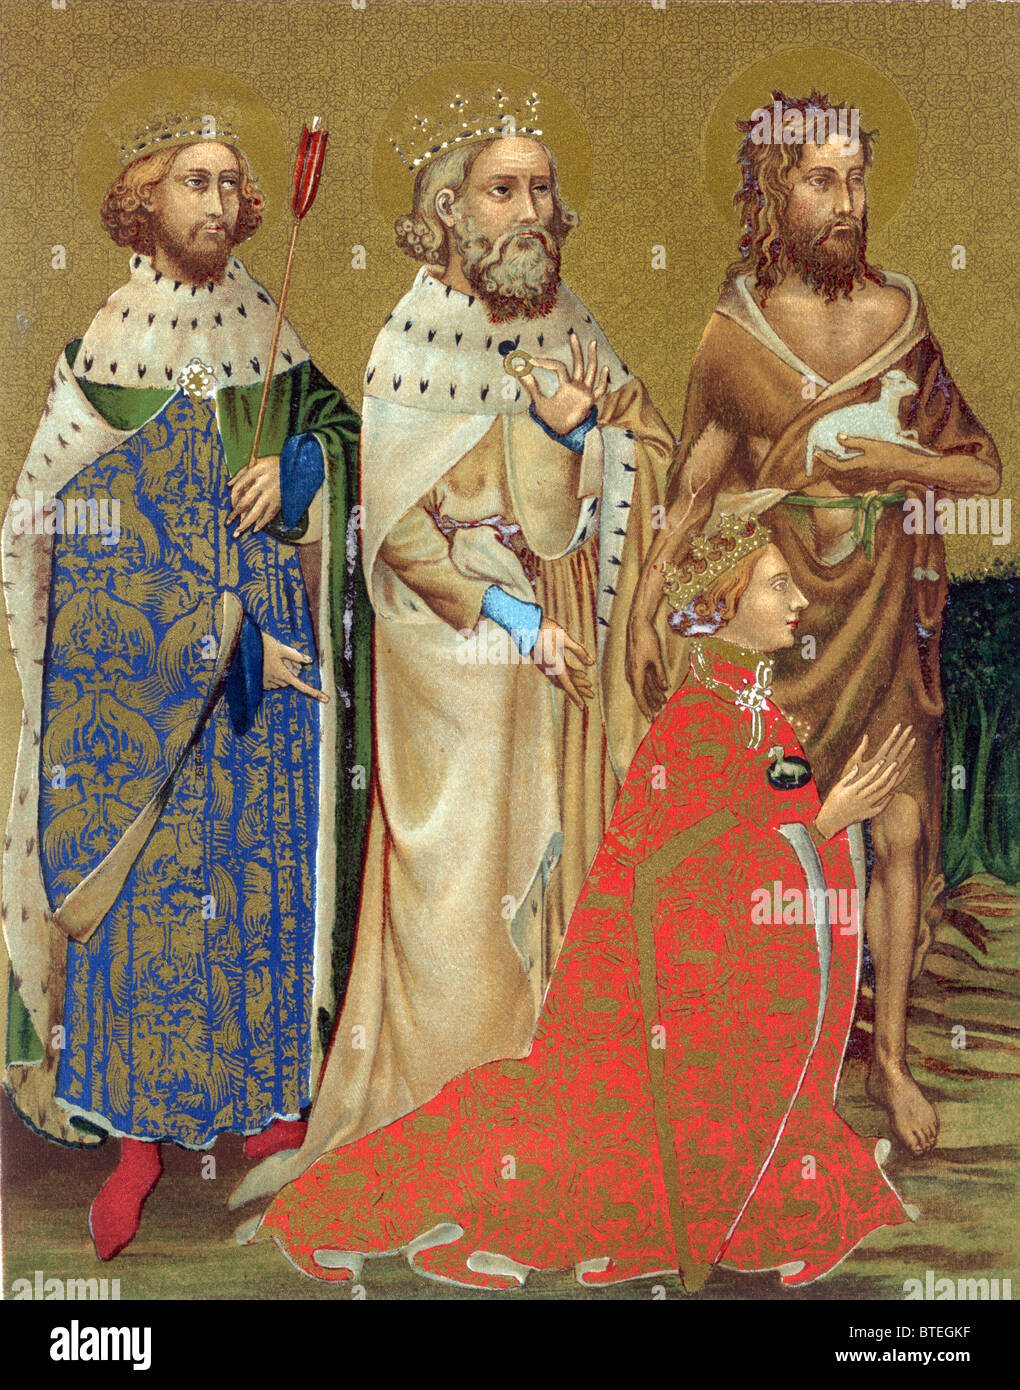 Richard II and his patron saints, John the Baptist, Edward the Confessor and Edmund King and Martyr; Colour Illustration - Stock Image